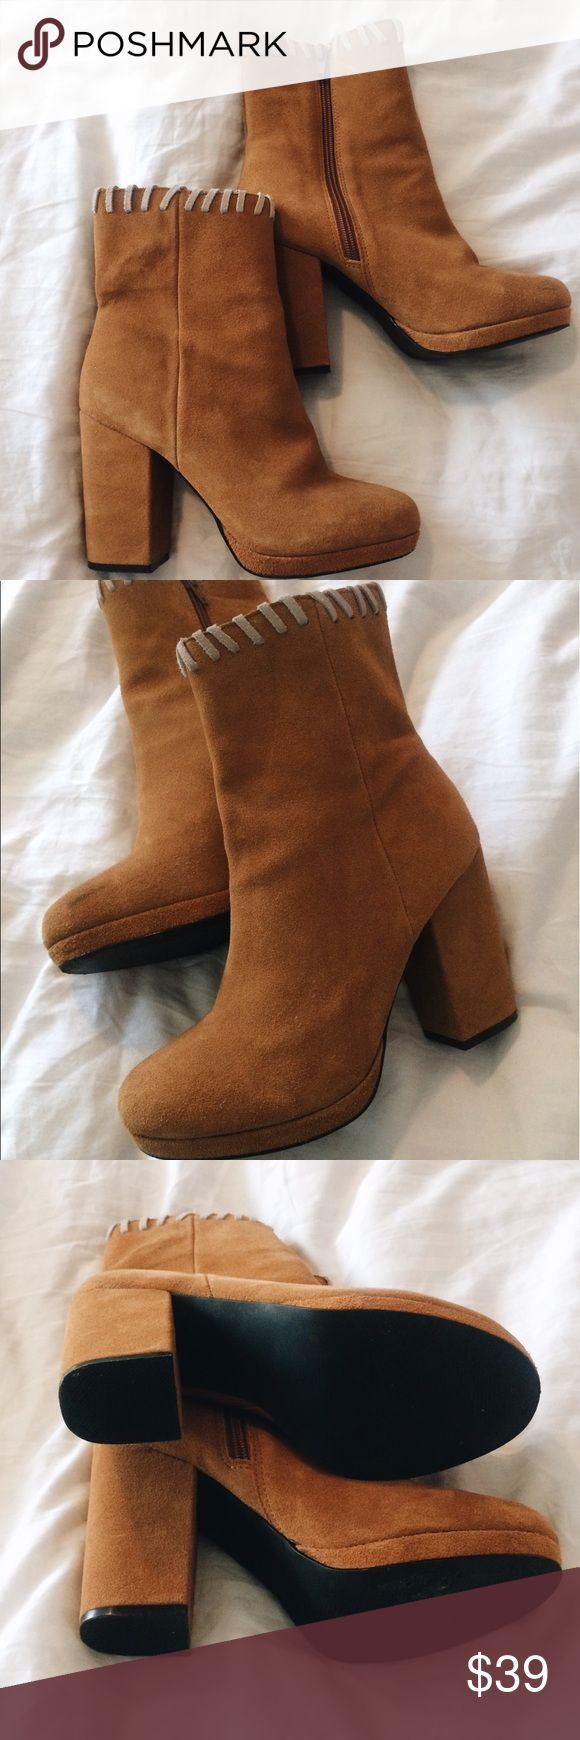 Tan Urban Outfitters heeled cow suede ankle boots Worn once!!! They are so cute and fun for almost any occasion. They're very true to size :) Urban Outfitters Shoes Heeled Boots